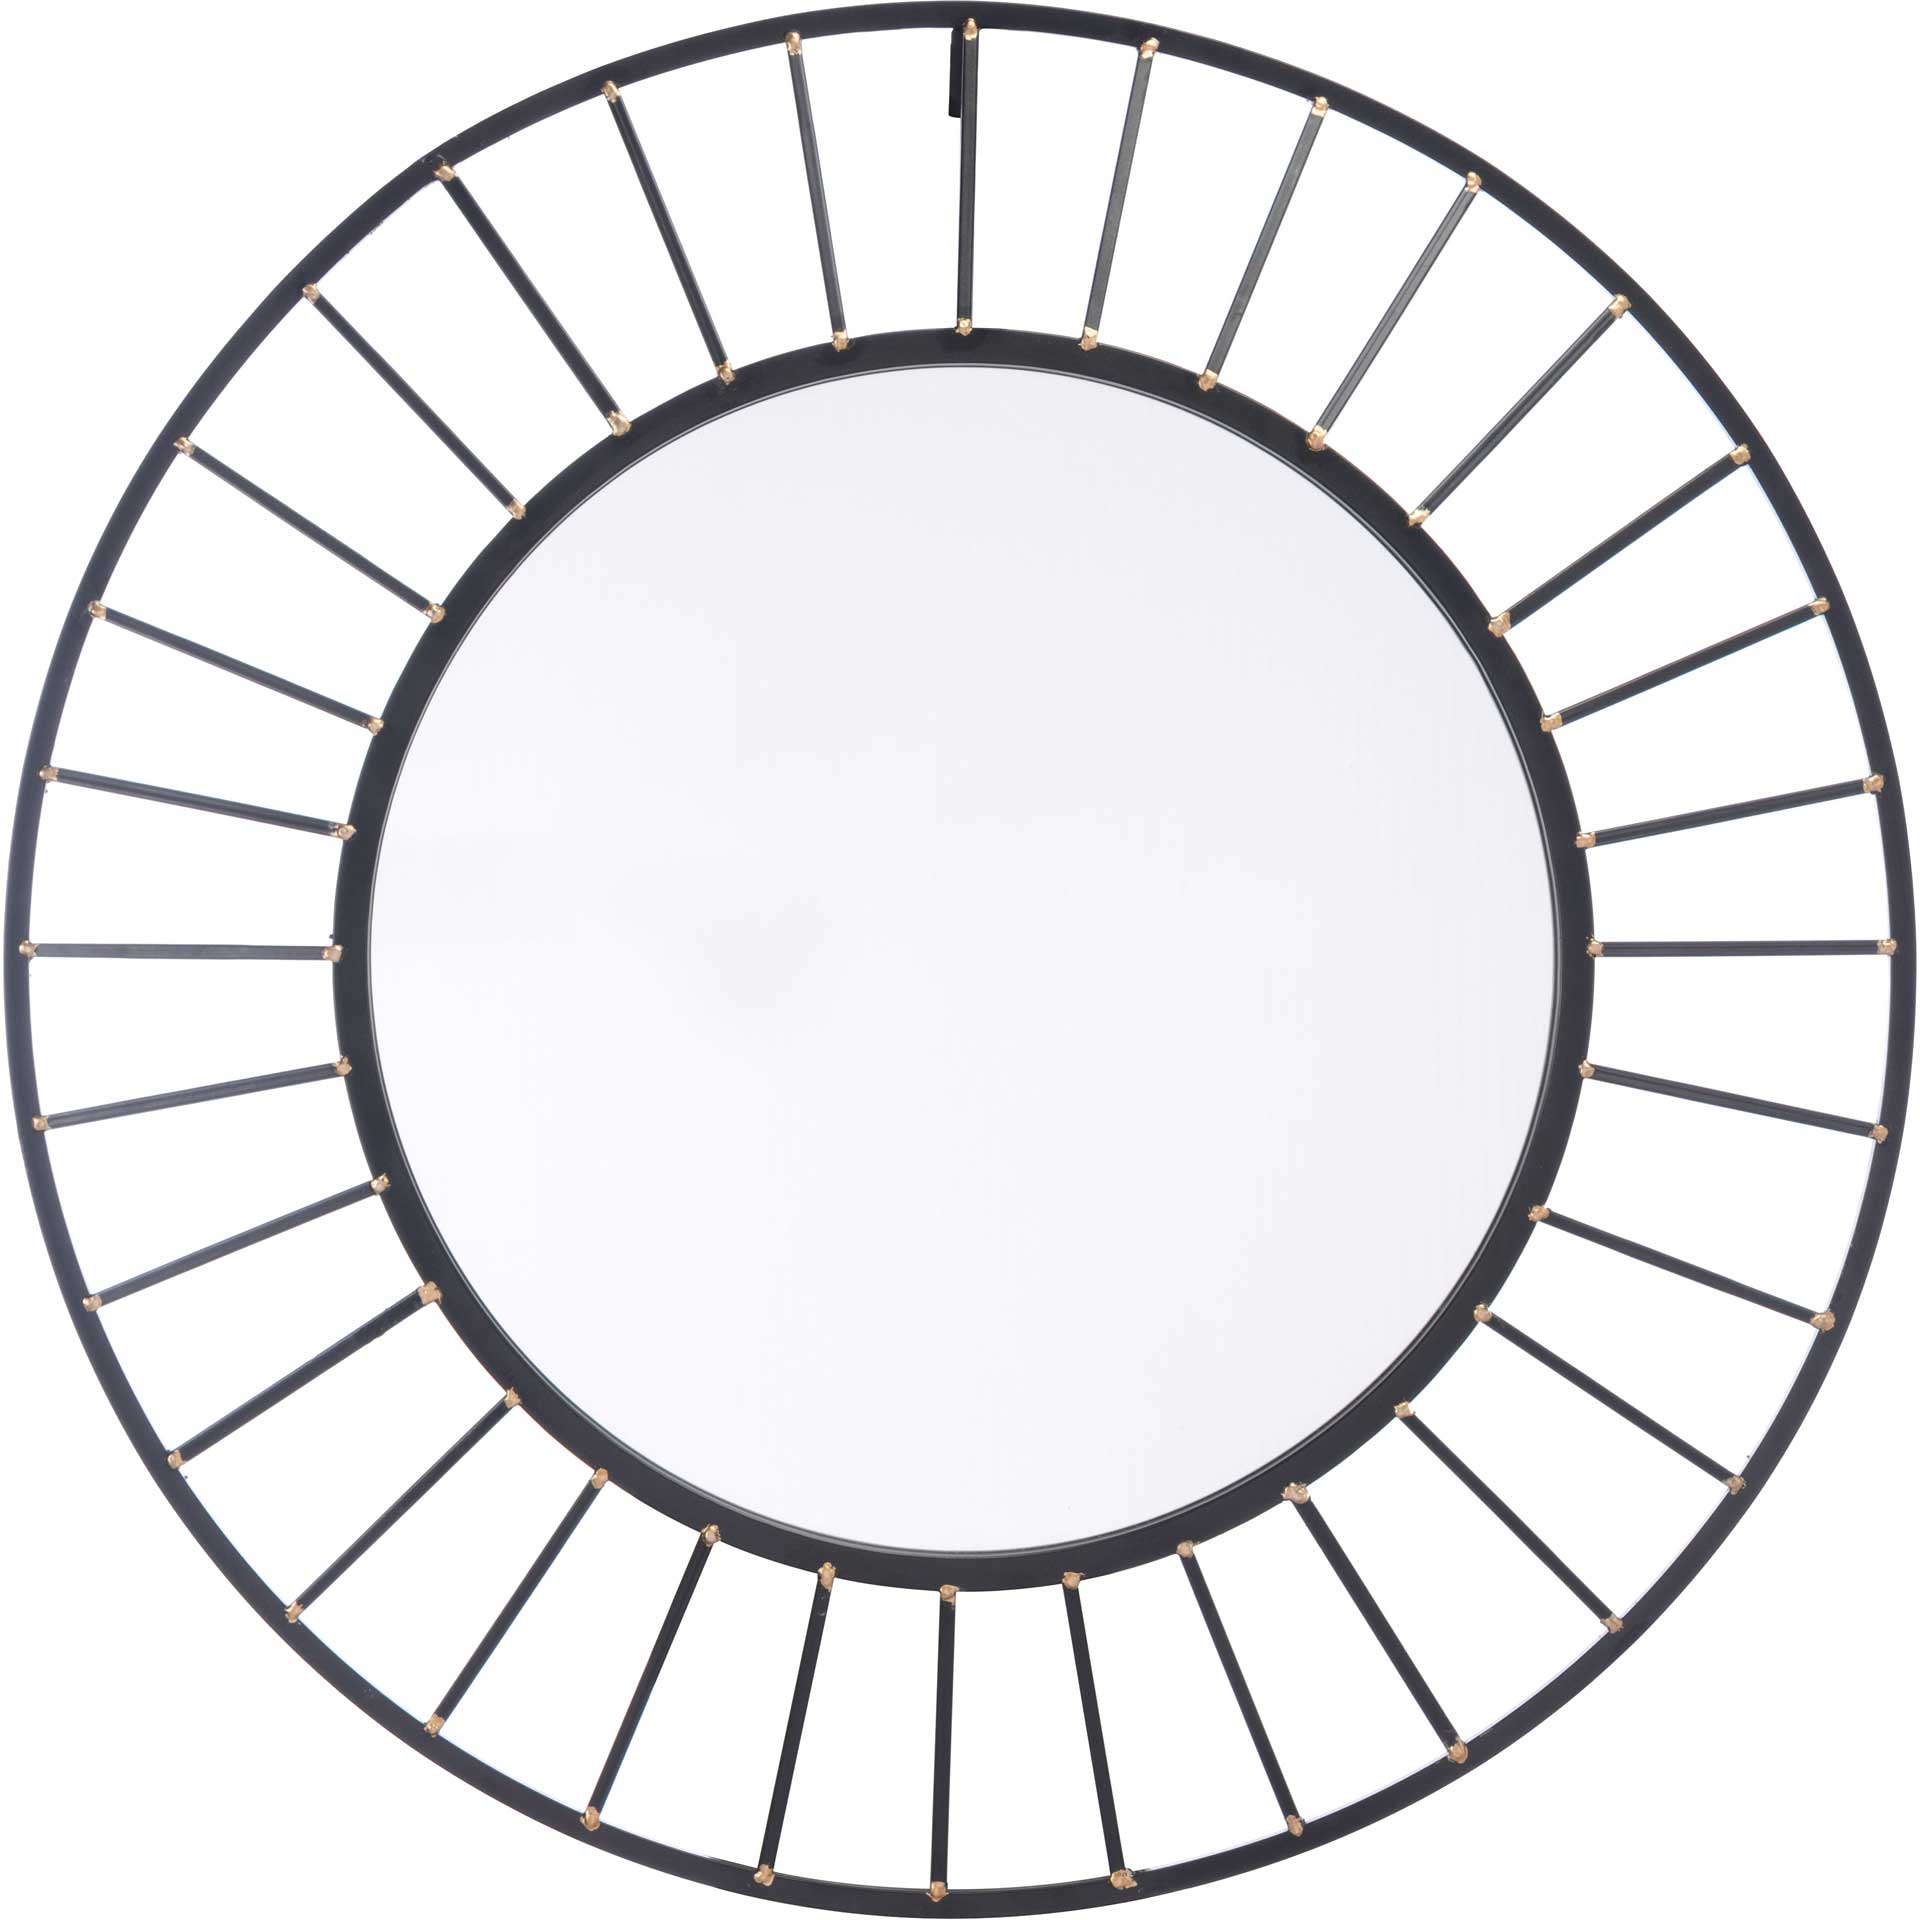 Sunburst Round Mirror Black